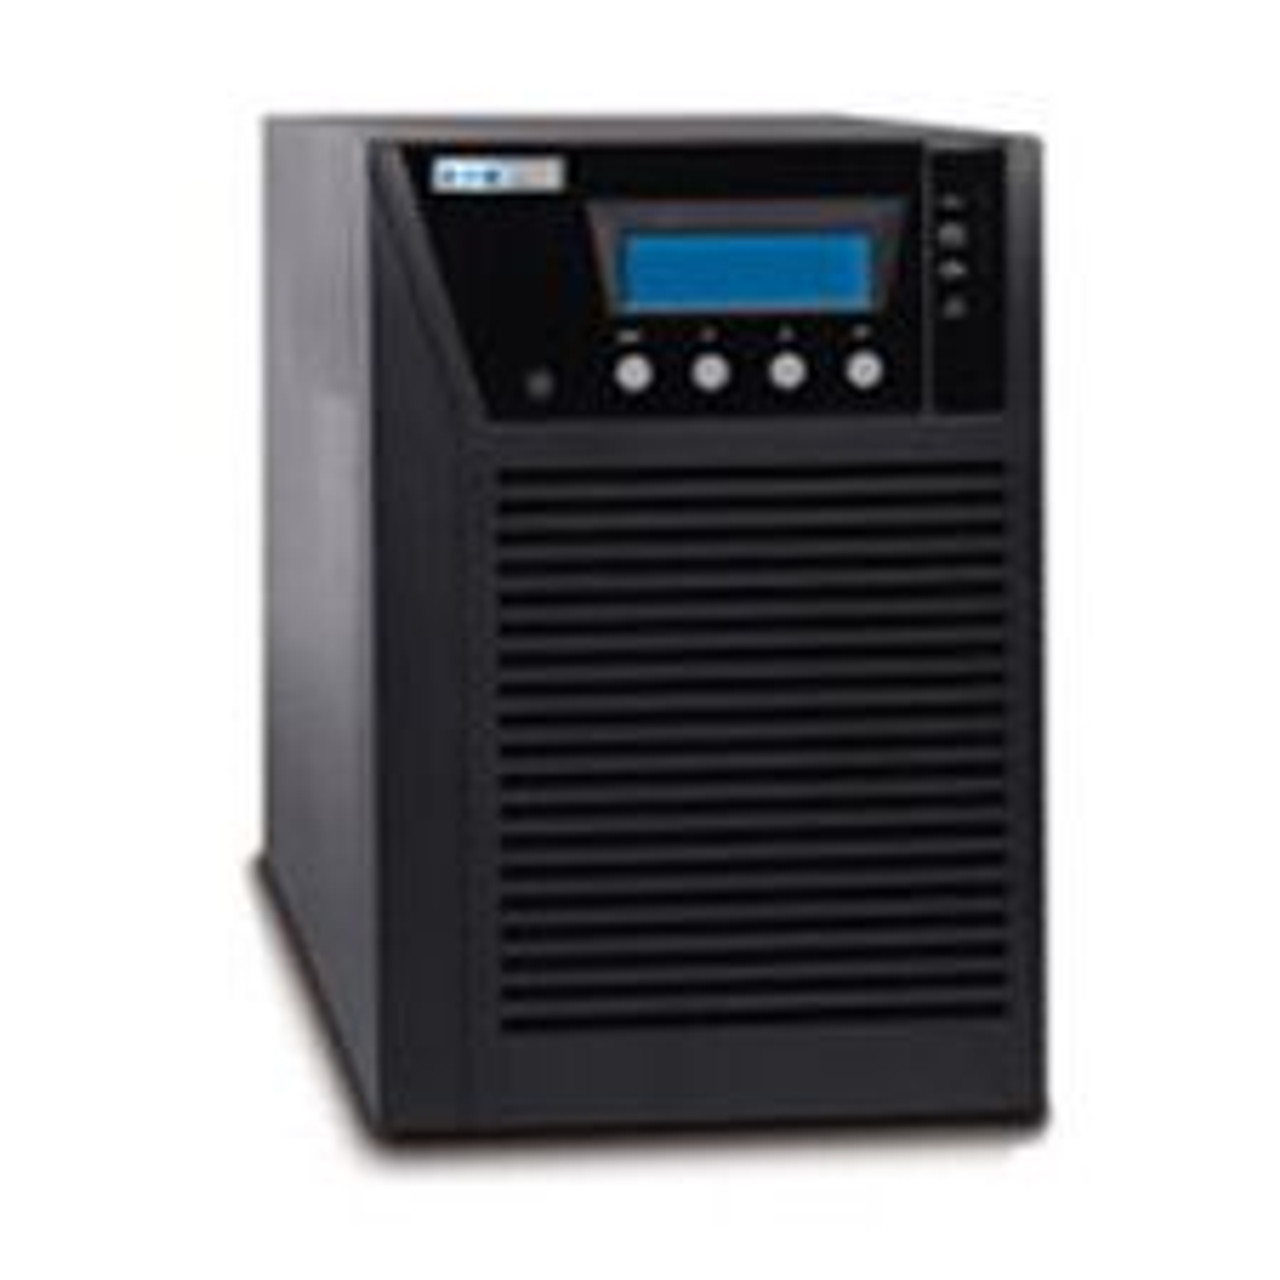 Image for Eaton 9130 2000VA/1800W On Line Tower UPS CX Computer Superstore